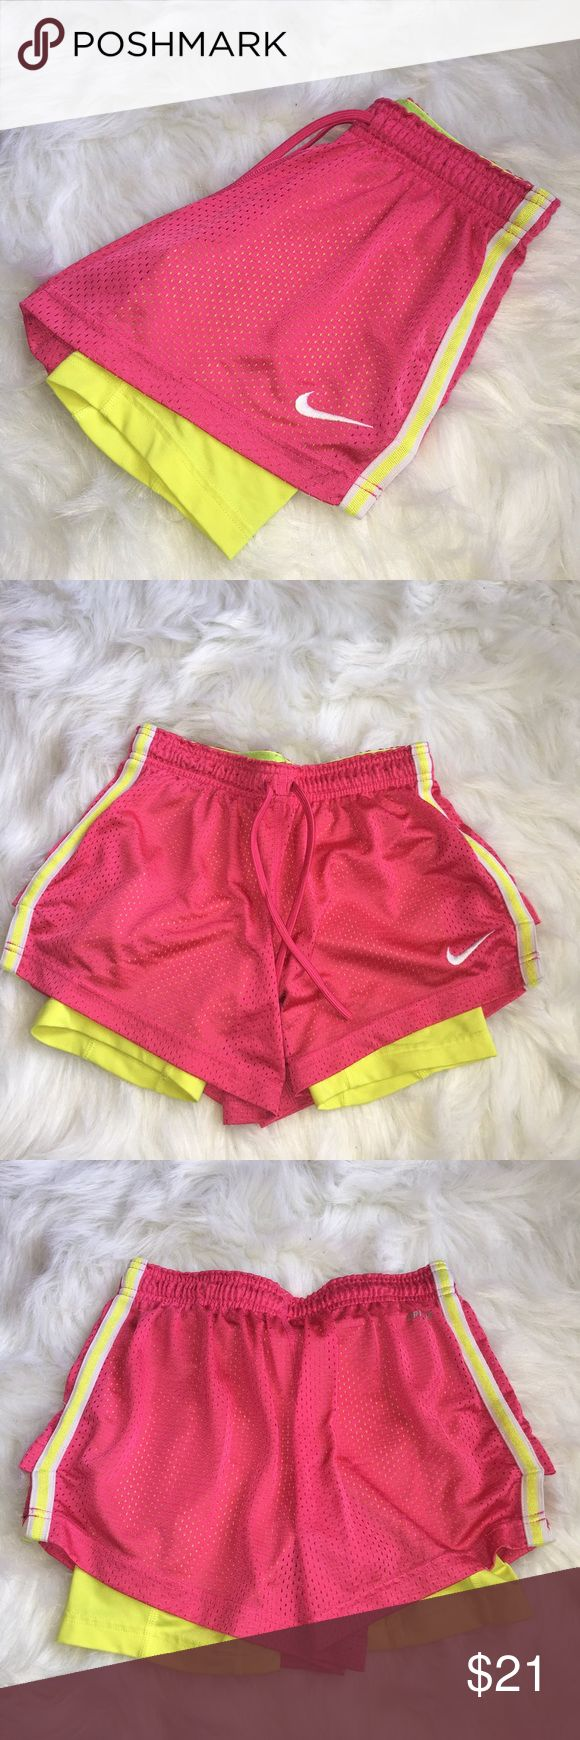 Nike dri-fit shorts with spandex Super cute Nike dri-fit shorts with spandex underneath. Awesome for the gym or running (you won't have to keep tugging at your shorts) they won't ride up! Can't find these anywhere anymore. Nike Shorts